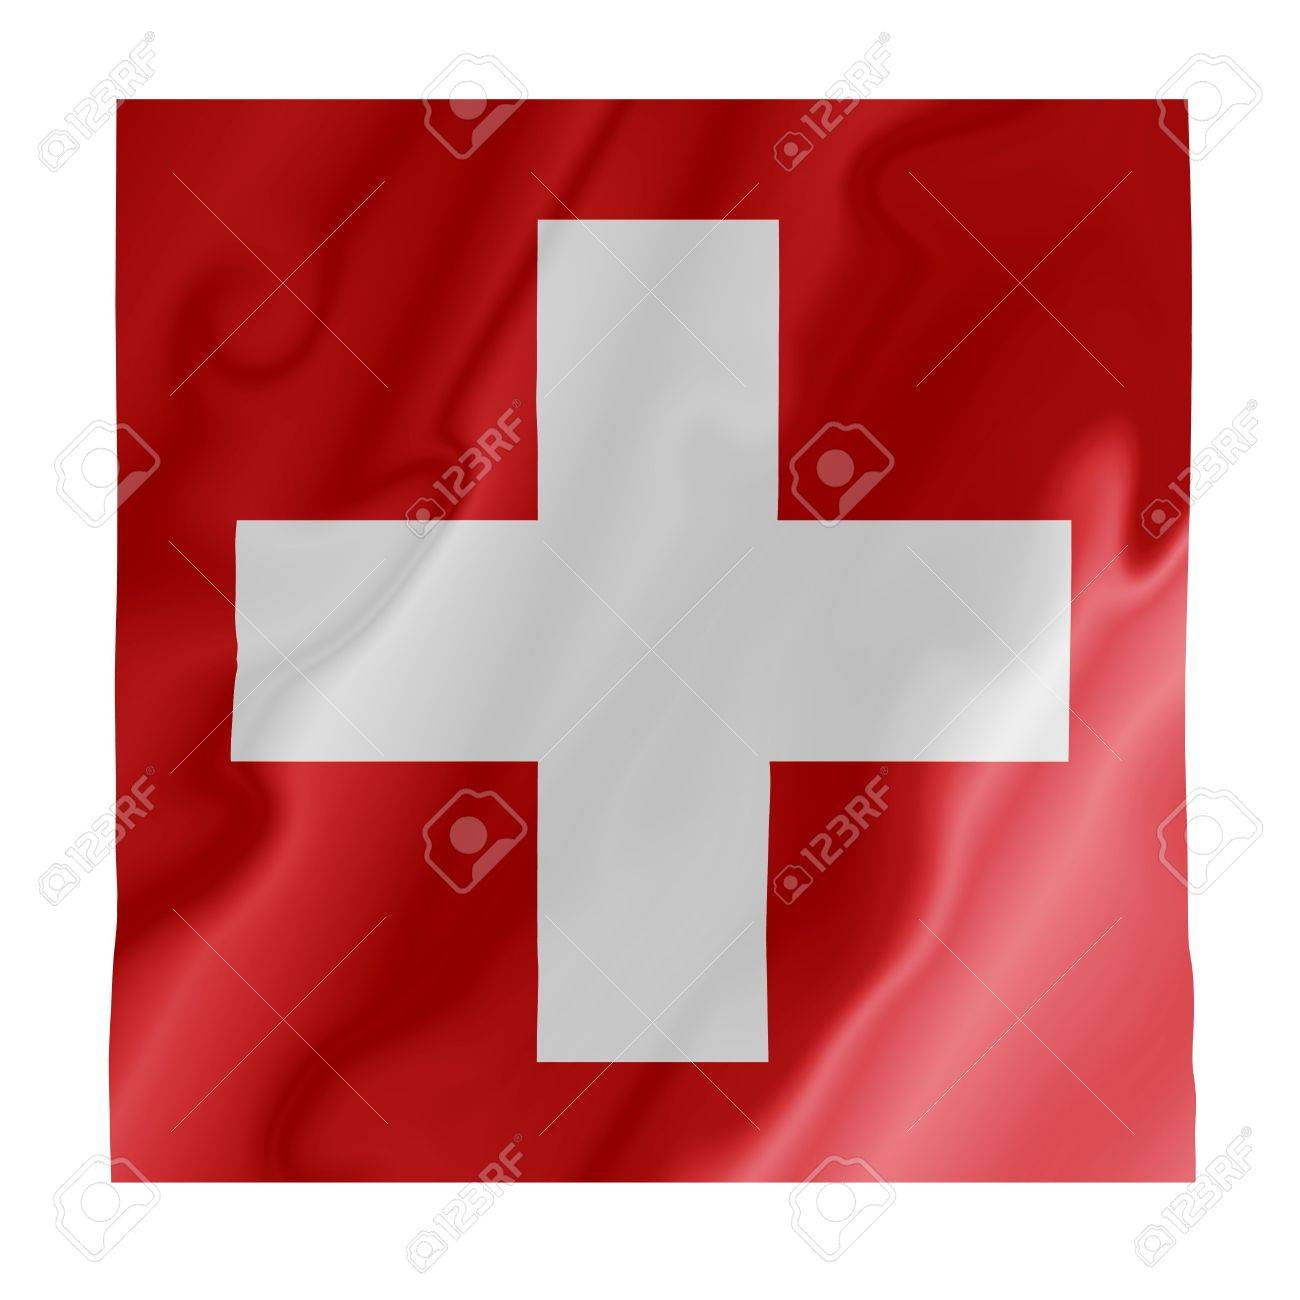 Fluttering image of the Swiss national flag Stock Photo - 2808462